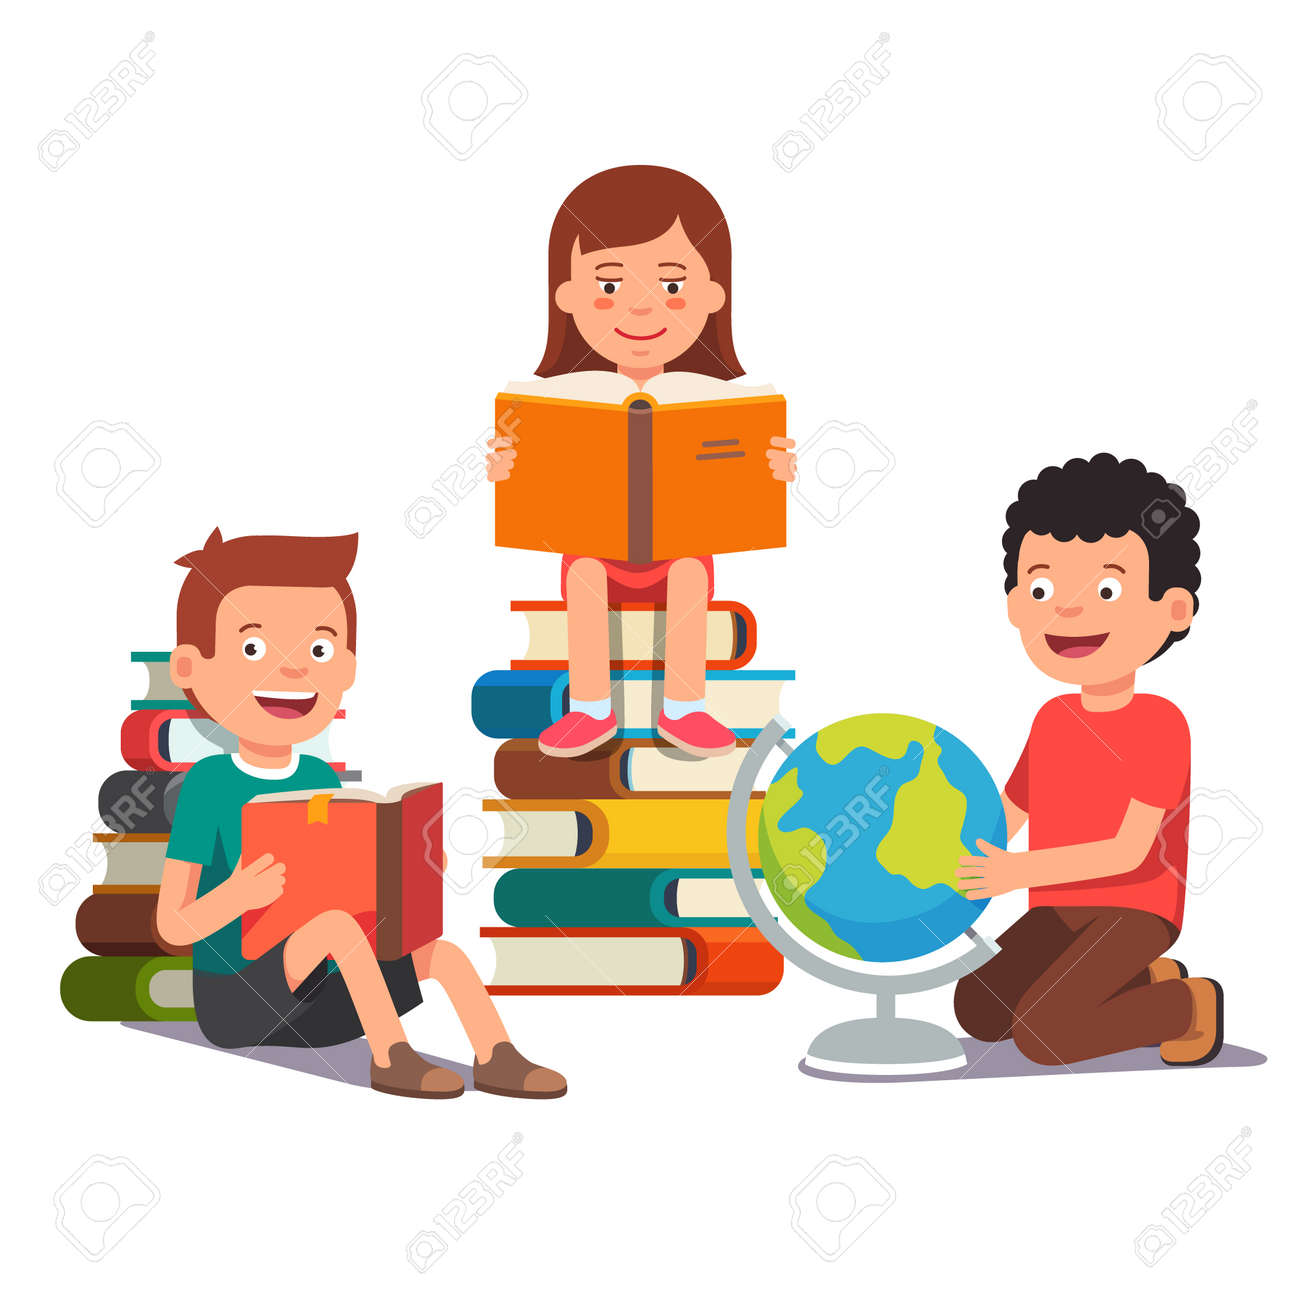 Group of kids studying and learning together. Boys and girl reading books and doing homework. Flat style vector illustration isolated on white background. - 54217161